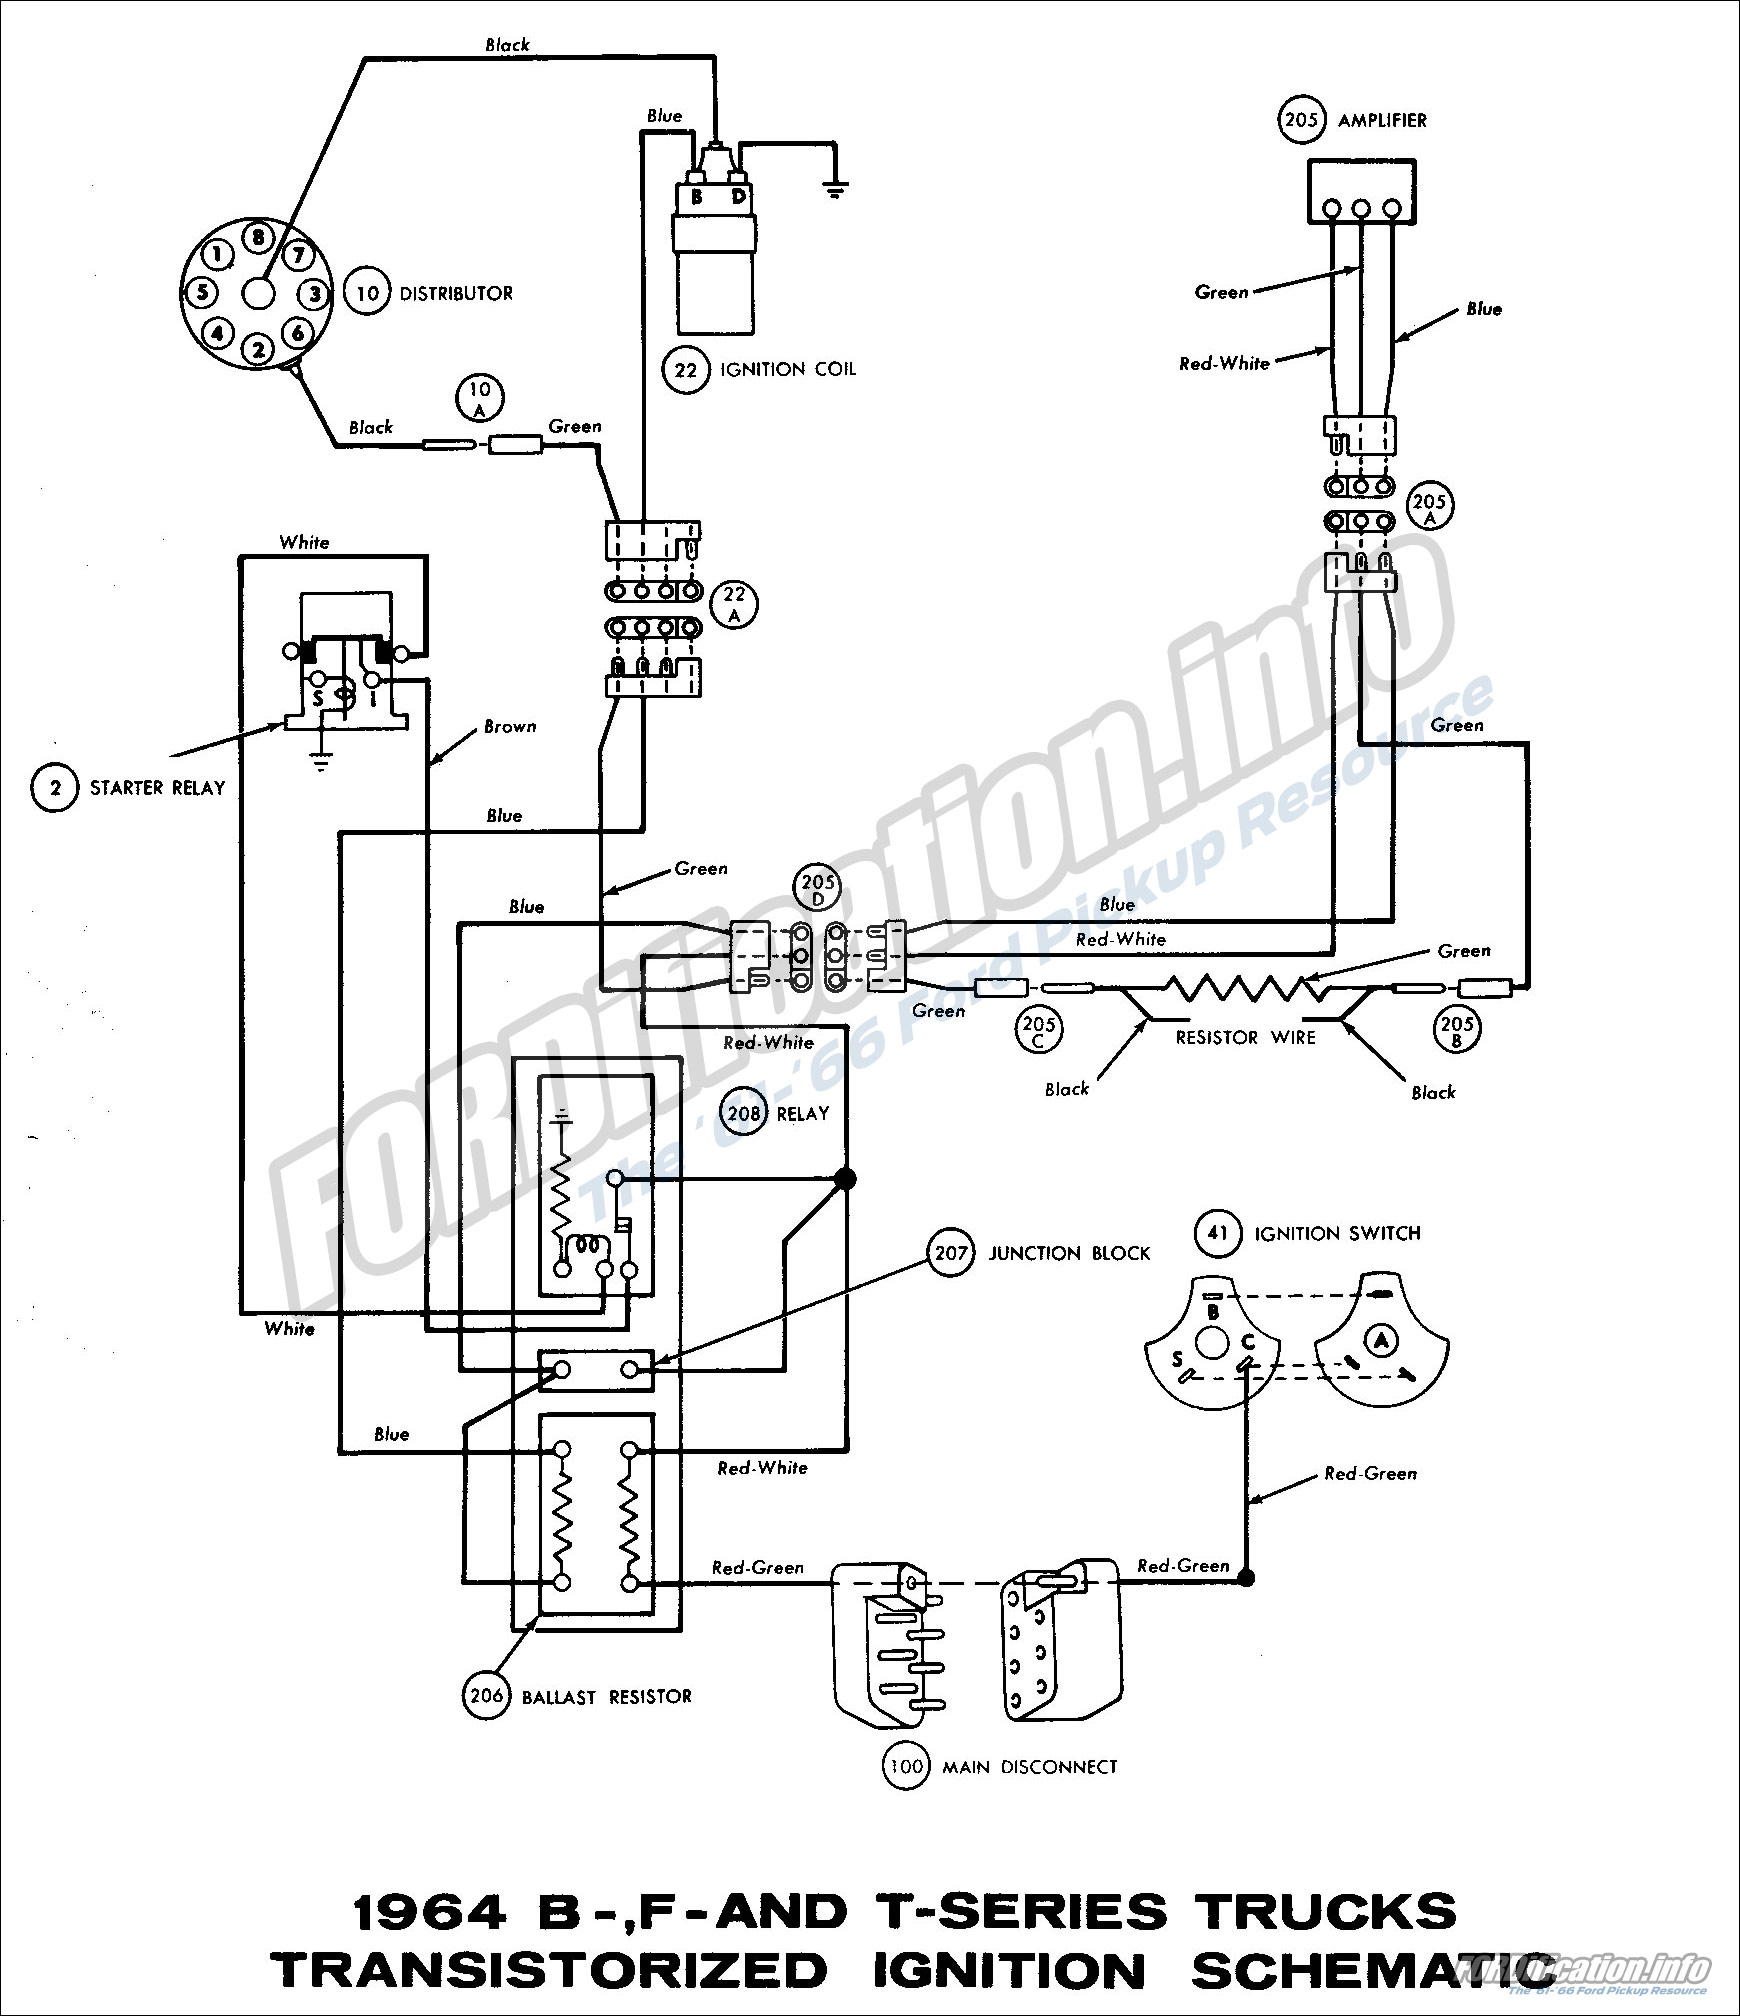 1964 Chrysler Wiring Schematic Ford Truck Diagrams The 61 66 B F And T Series Trucks Transistorized Ignition